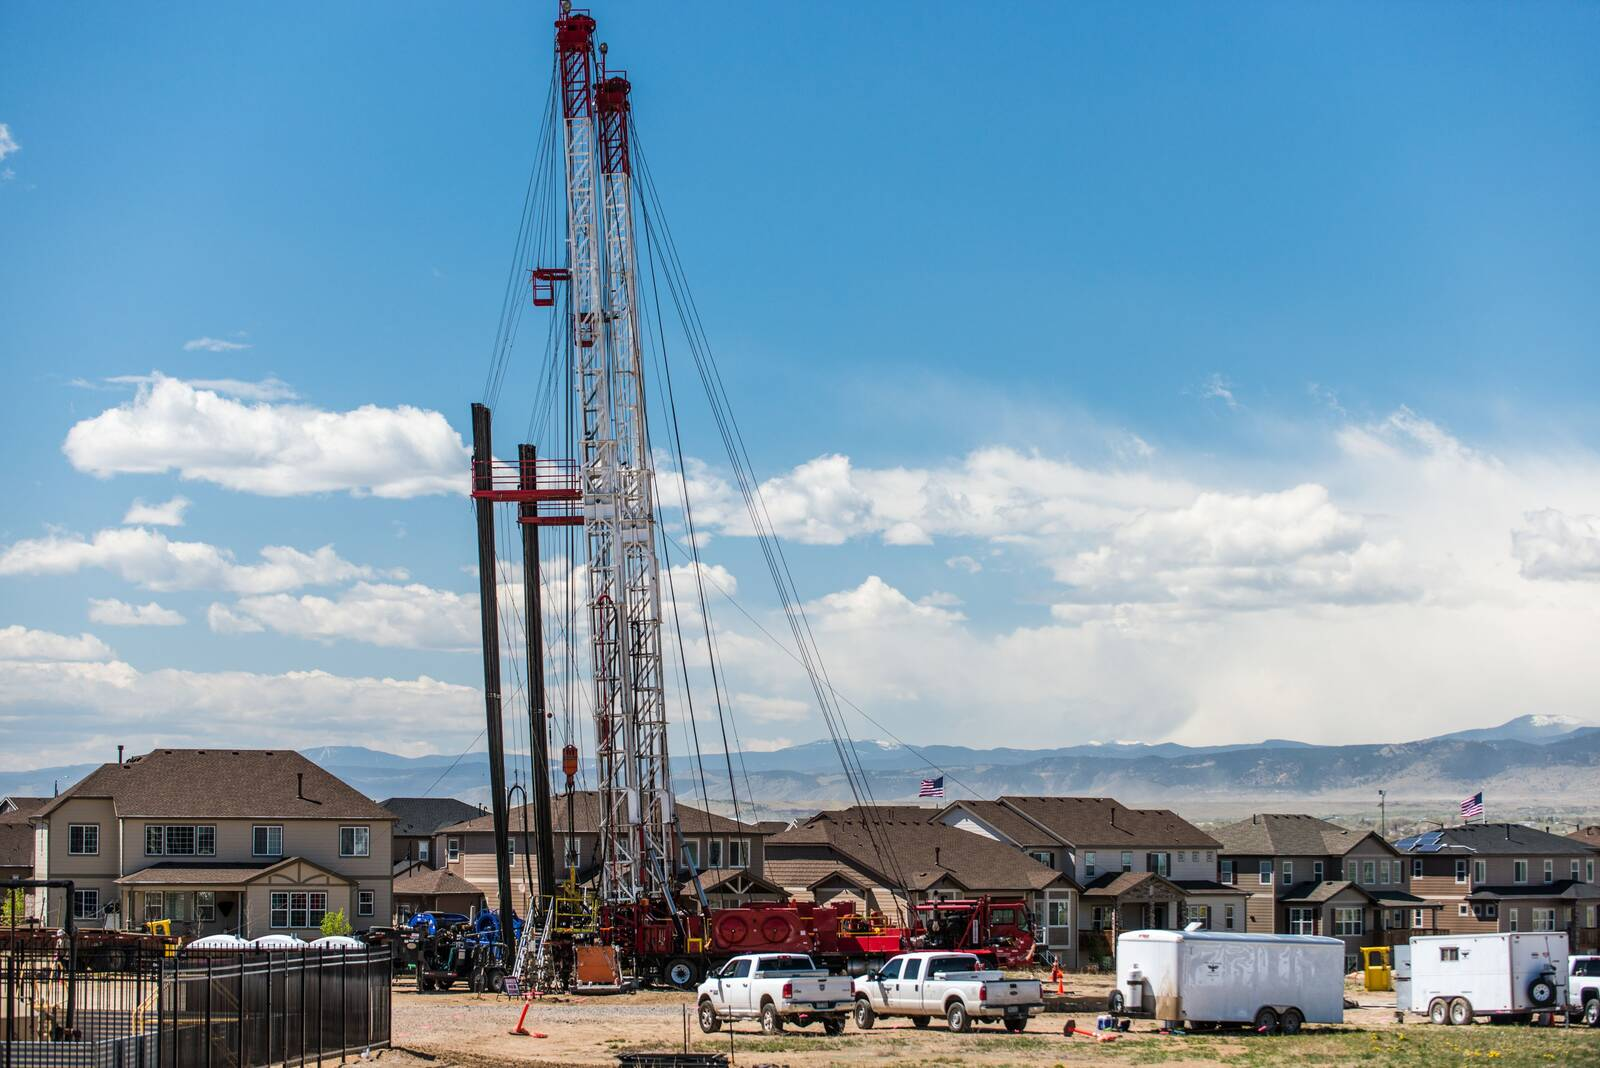 Front Range communities in Colorado are under pressure from oil and gas development next to their neighborhoods. Credit: Ted Wood